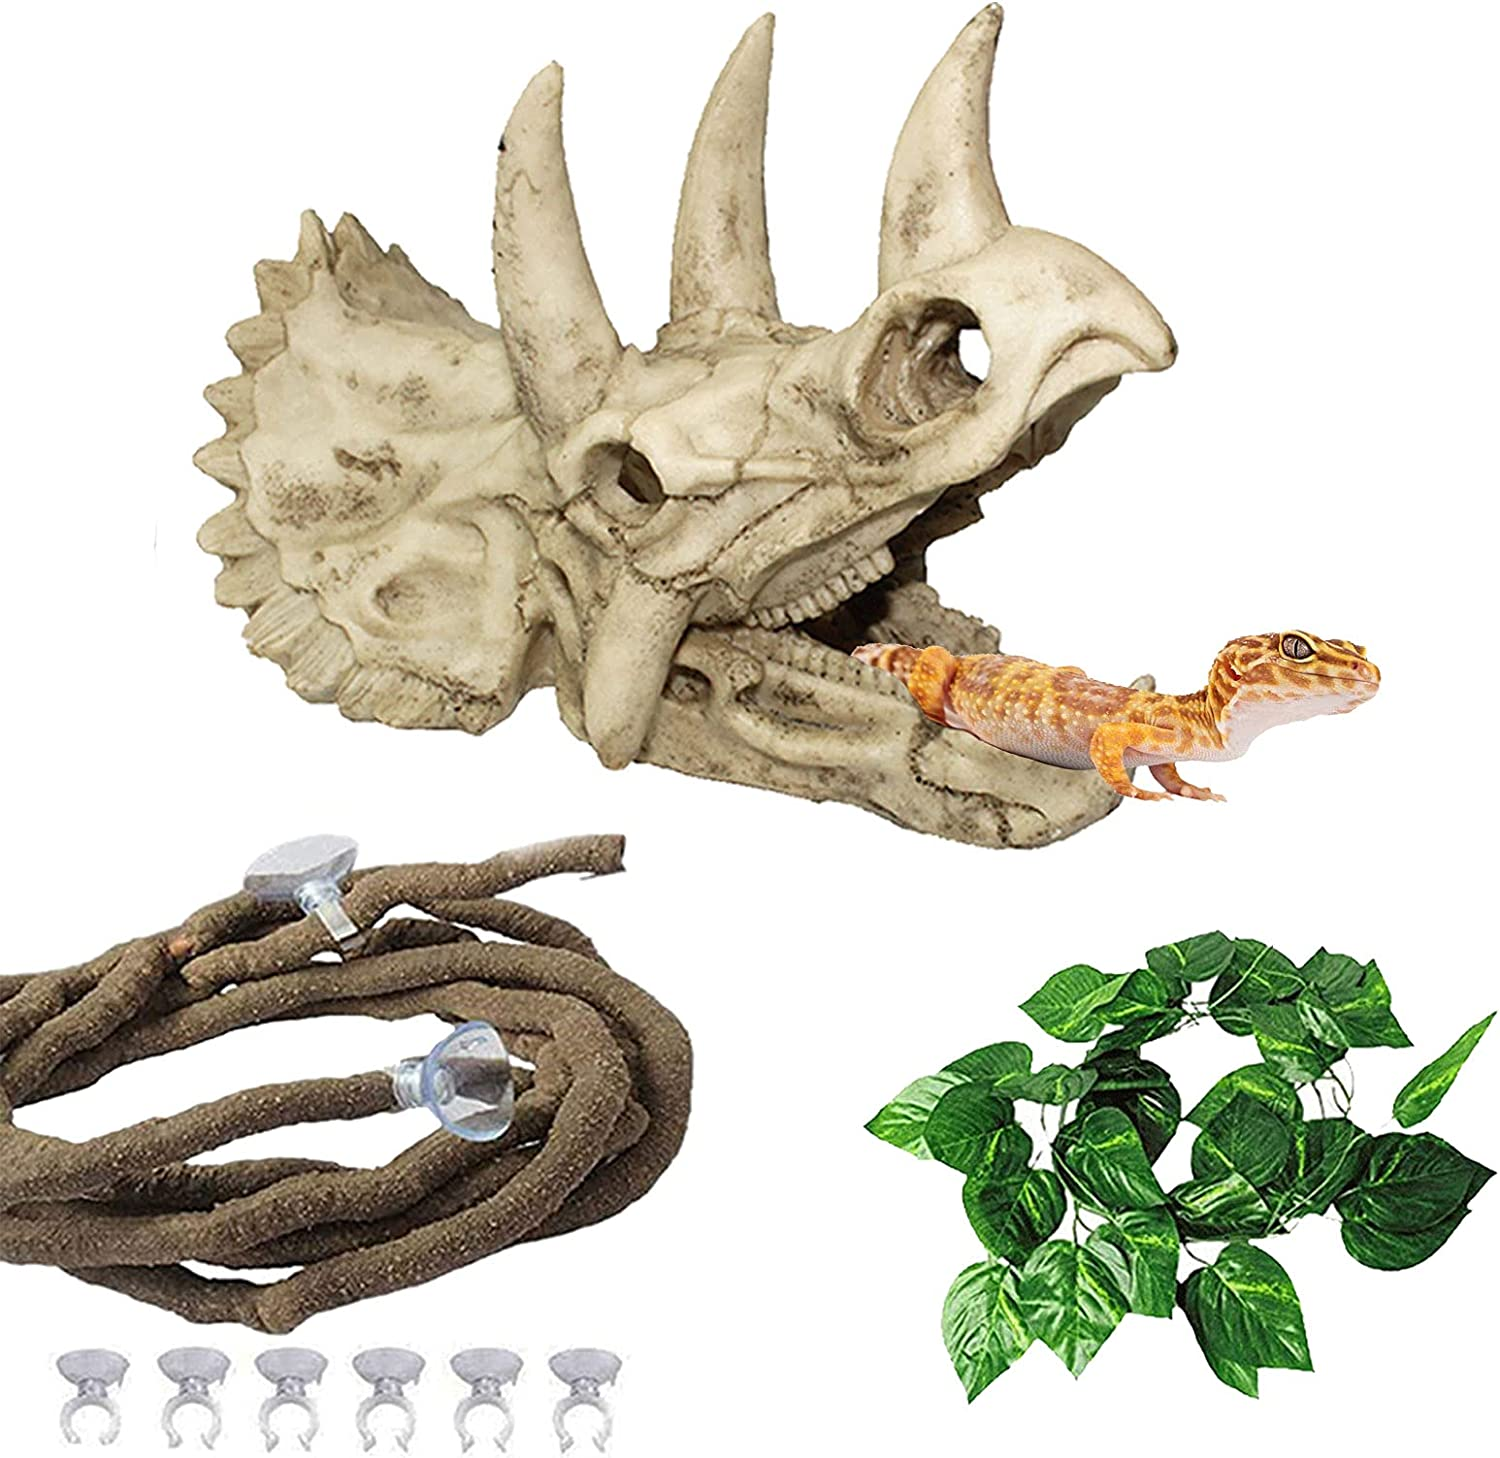 Tfwadmx Bearded Dragon Tank Accessories Resin Dinosaur Triceratops Skull Skeleton Reptiles Hideouts Cave Vines Leaves Aquarium Decorations for Lizards,Chameleon,Snake,Spider,Gecko